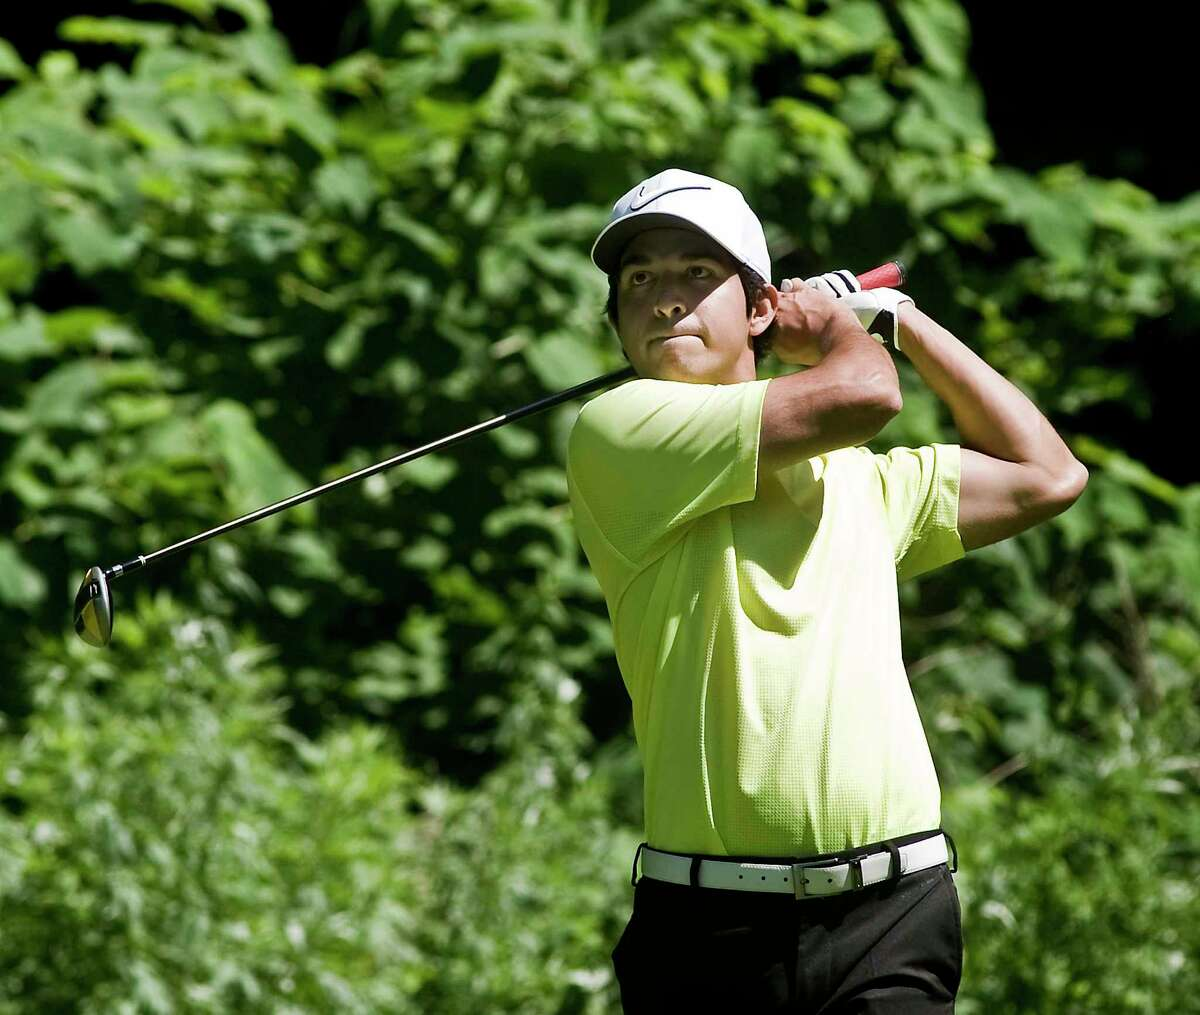 Jason Morilla watches his drive on the 13th hole during the 75th Greenwich Men's Town Golf Tournament at Griffith E. Harris Golf Course. Sunday, June 23, 2019